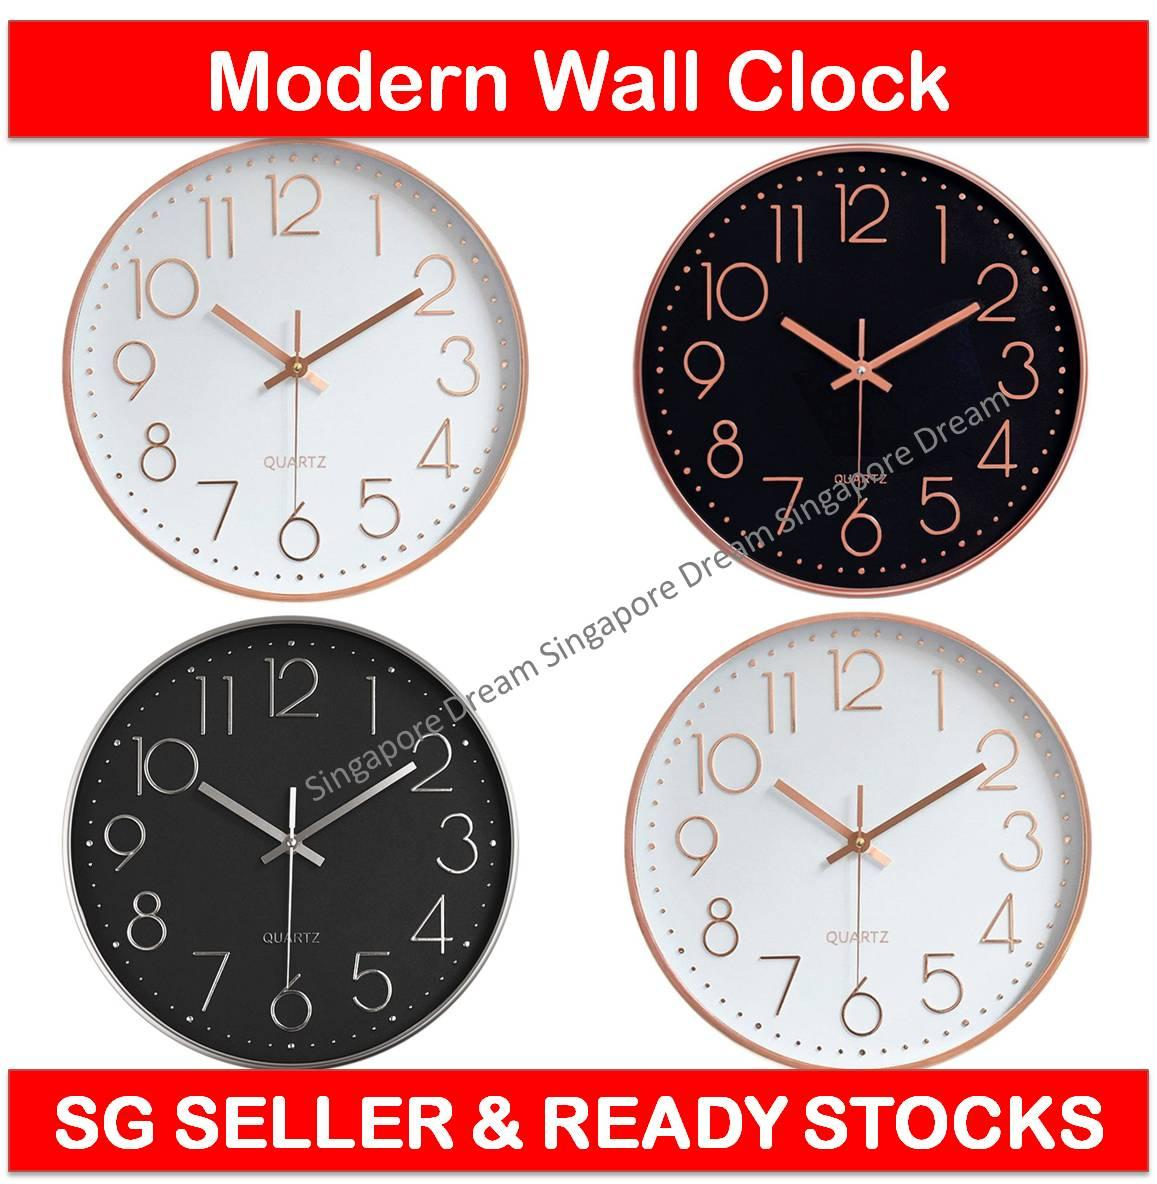 Quartz Battery Operated Wall Clock for Living Room Home Office with Plastic Frame and Glass Cover 30cm